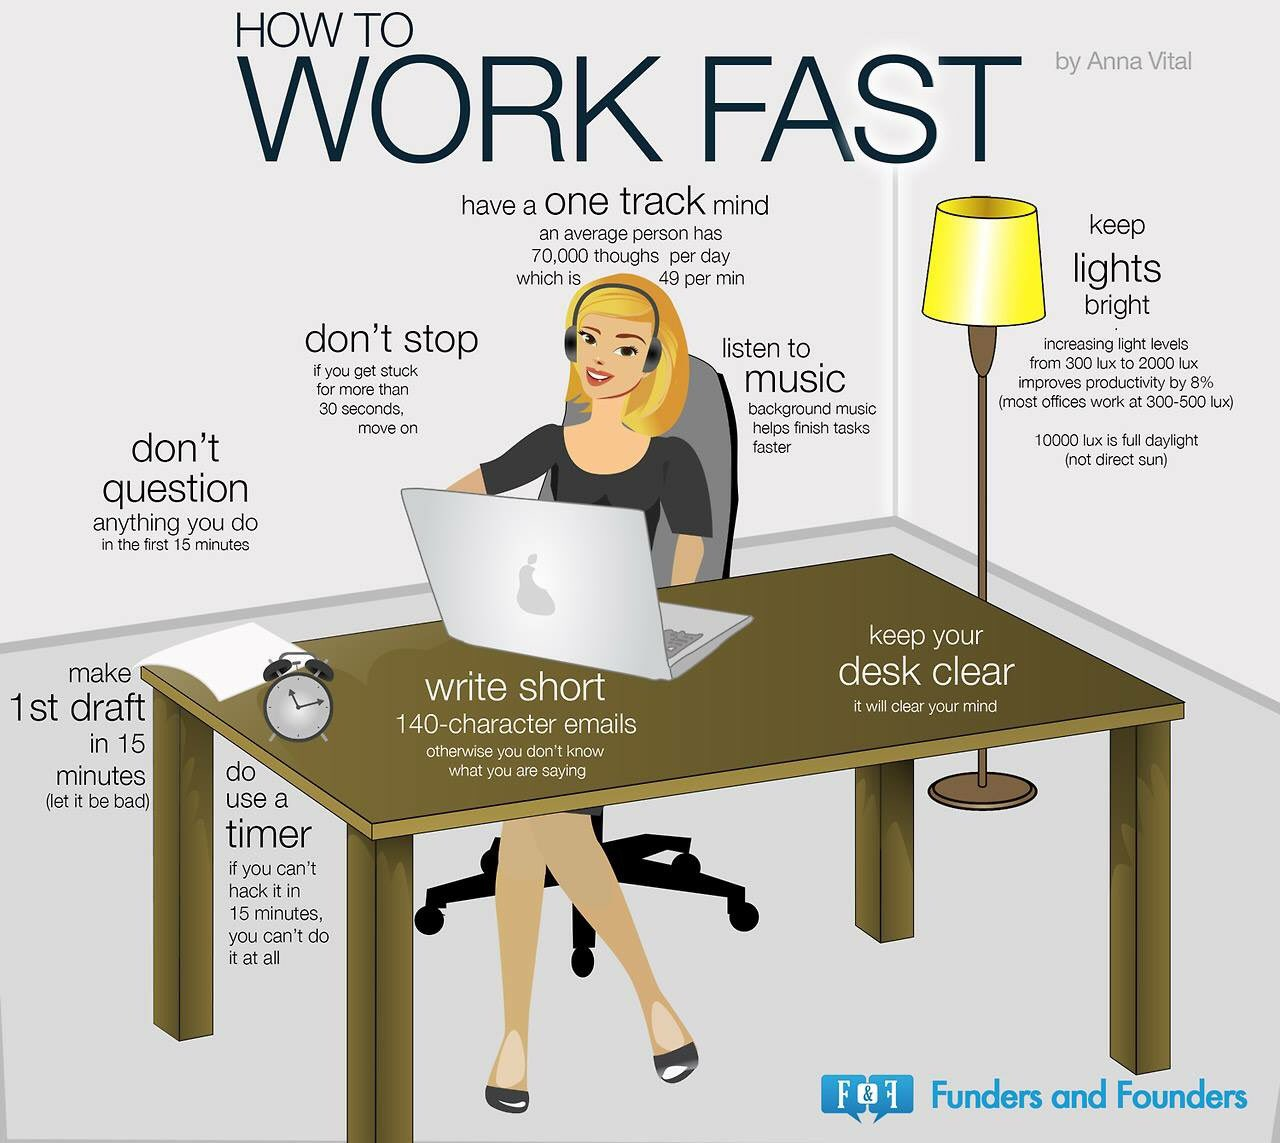 Sarmady On Twitter Follow These Tips To Help You Finish What You Re Doing And Work Fast